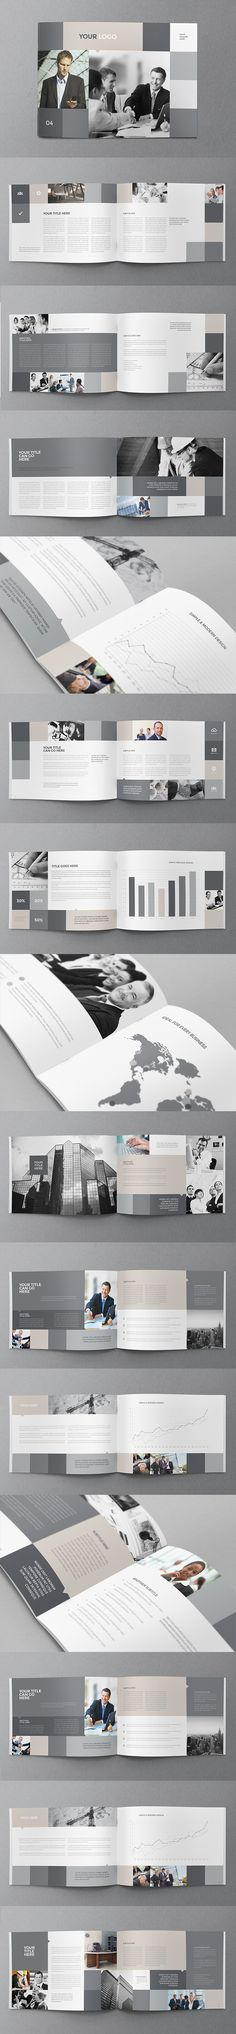 Simple Business Grey Brochure. Download here: http://graphicriver.net/item/simple-business-grey-brochure/11682709?ref=abradesign #brochure #design